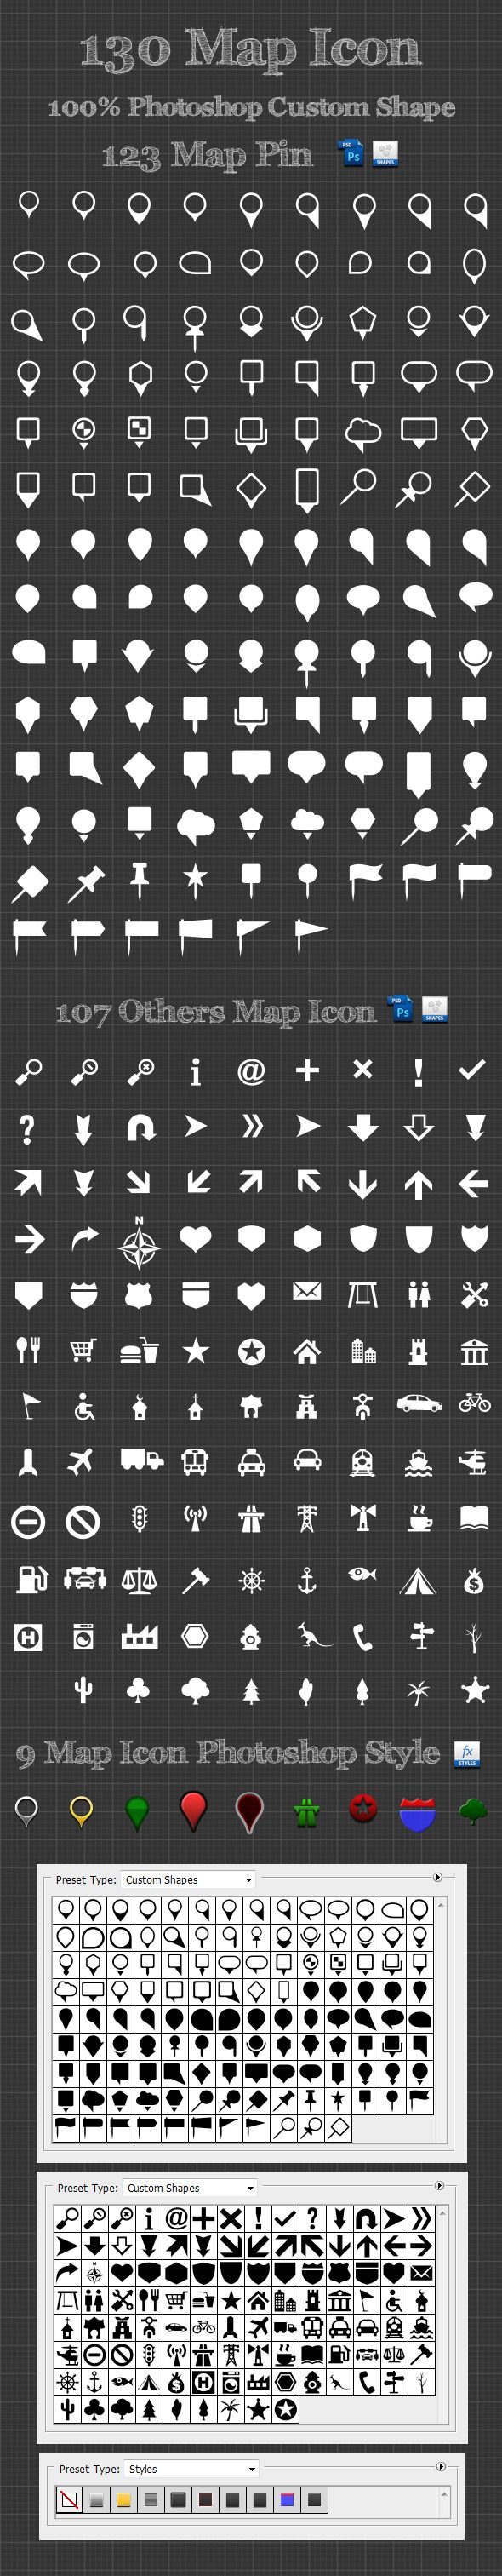 130 Map Icon Photoshop Custom Shapes - Symbols Shapes